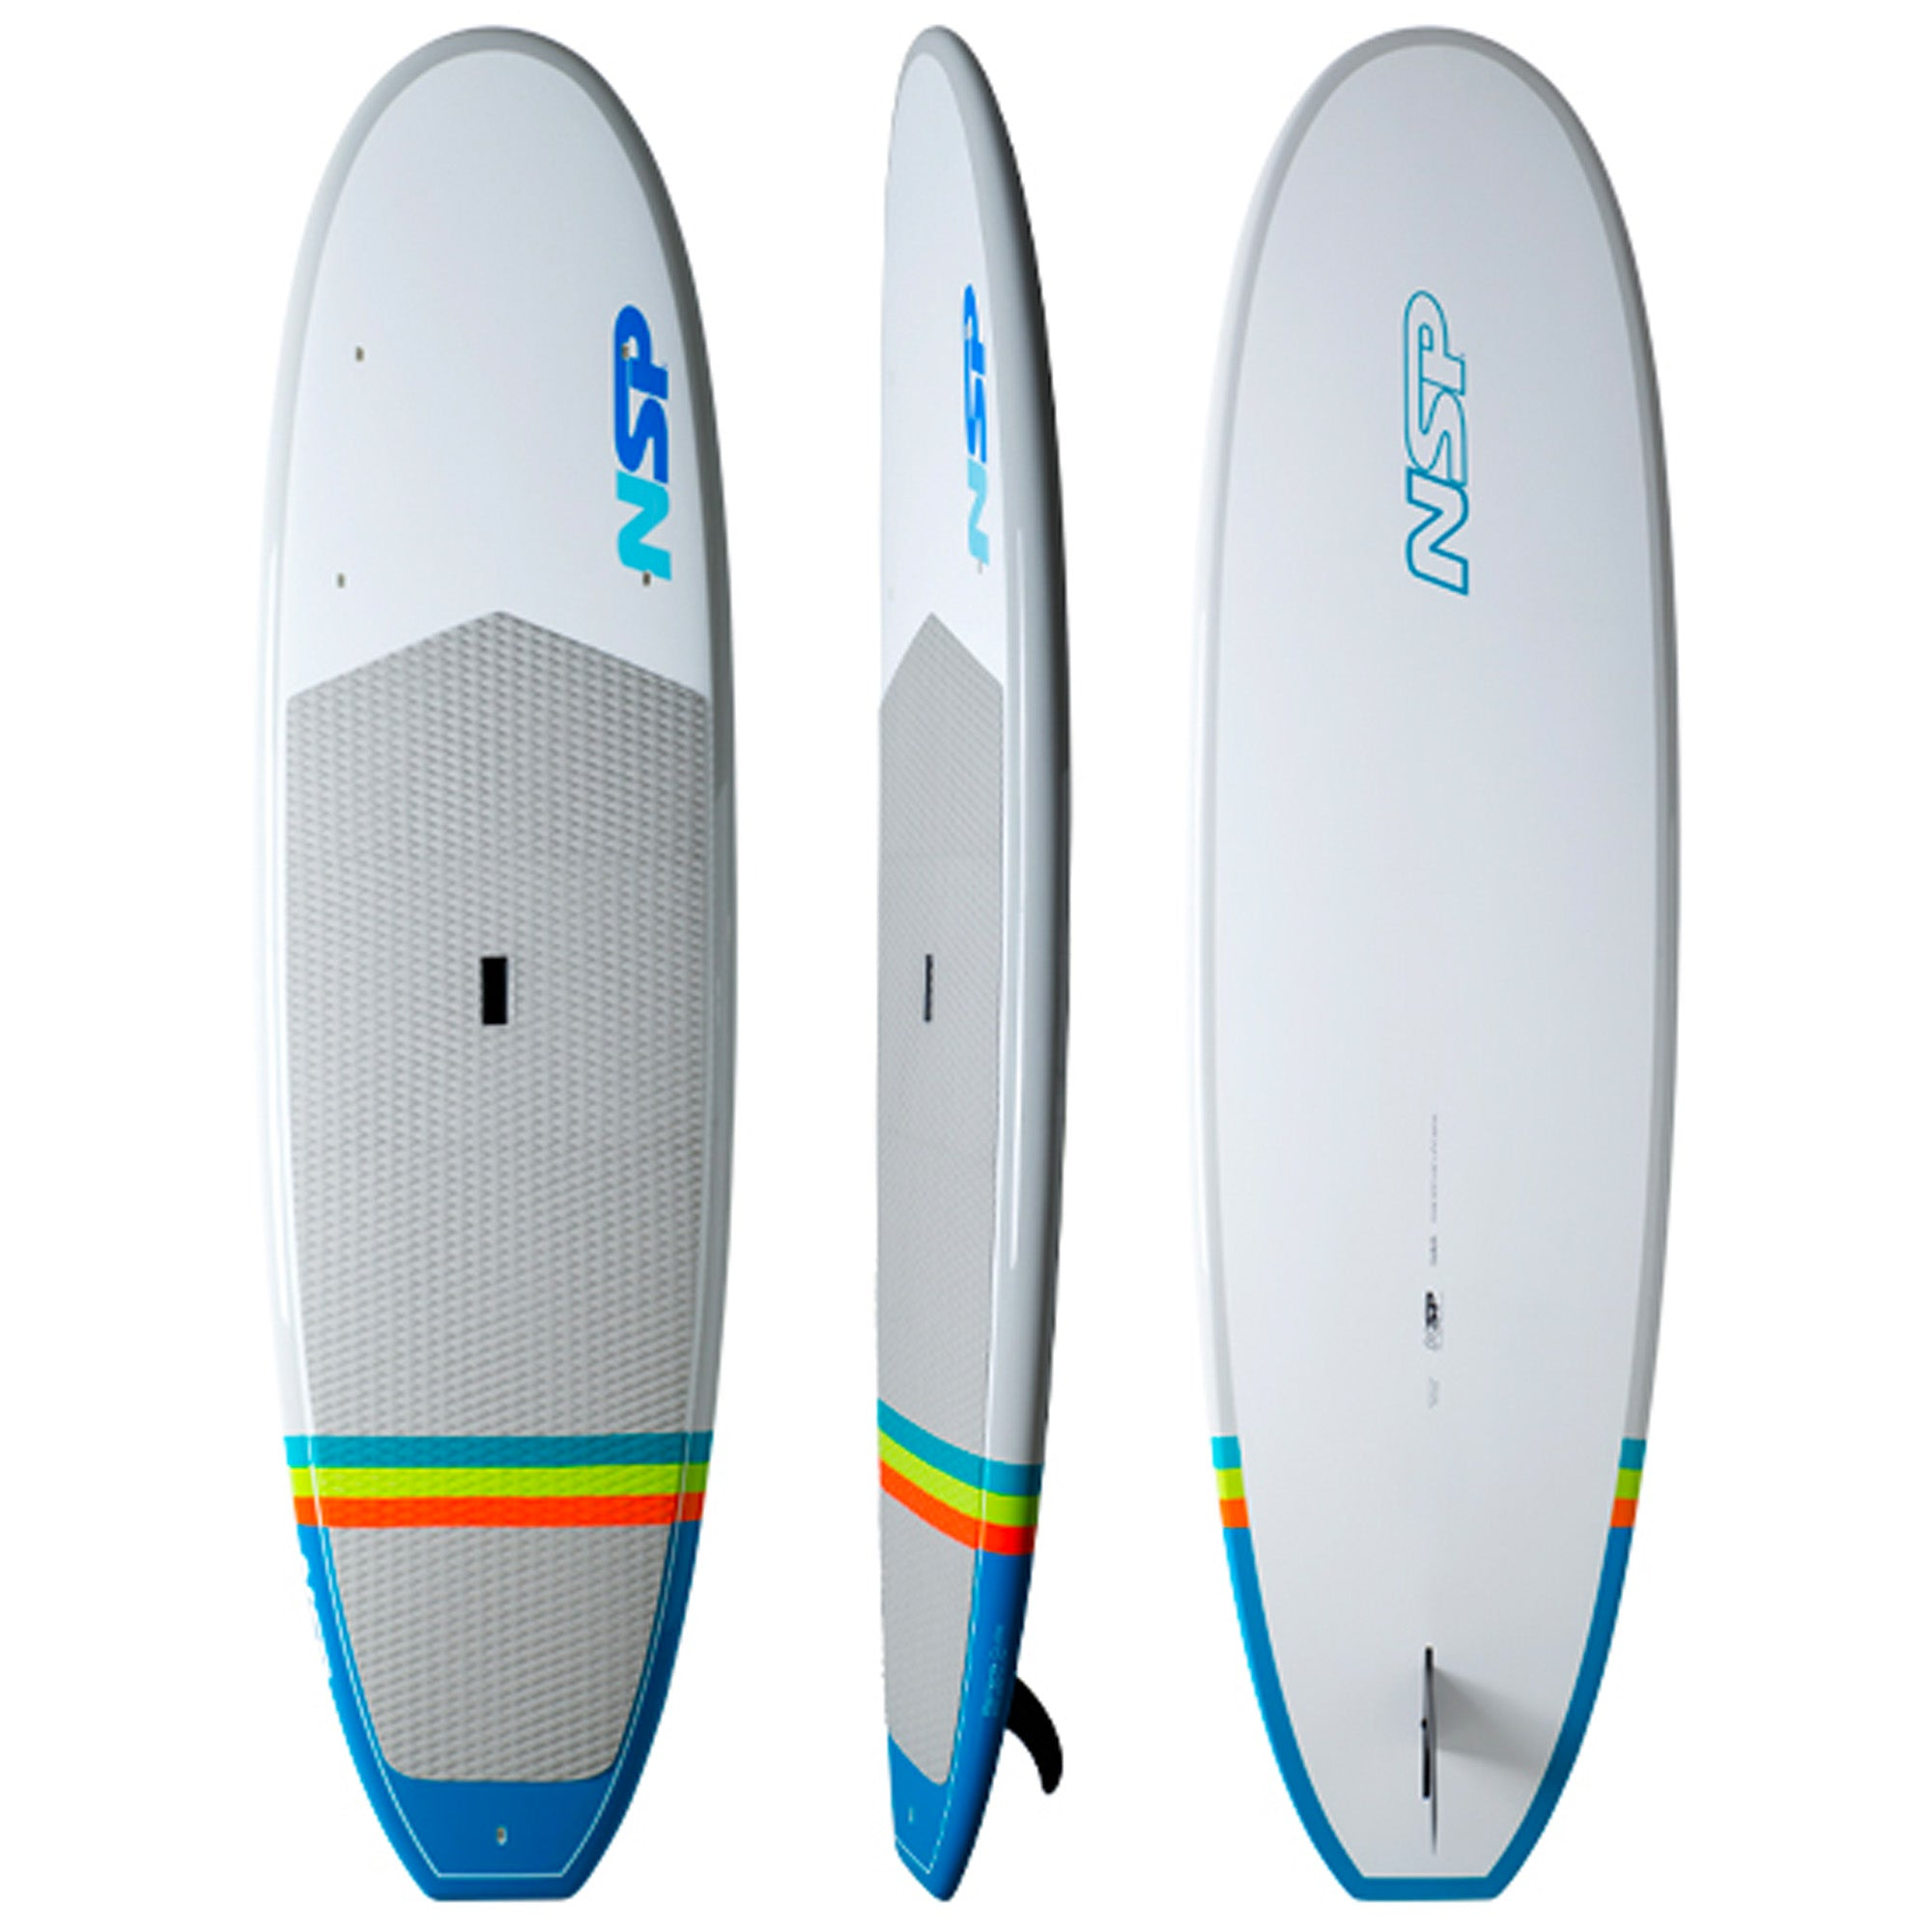 NSP Elements Cruise Stand Up Paddle Board